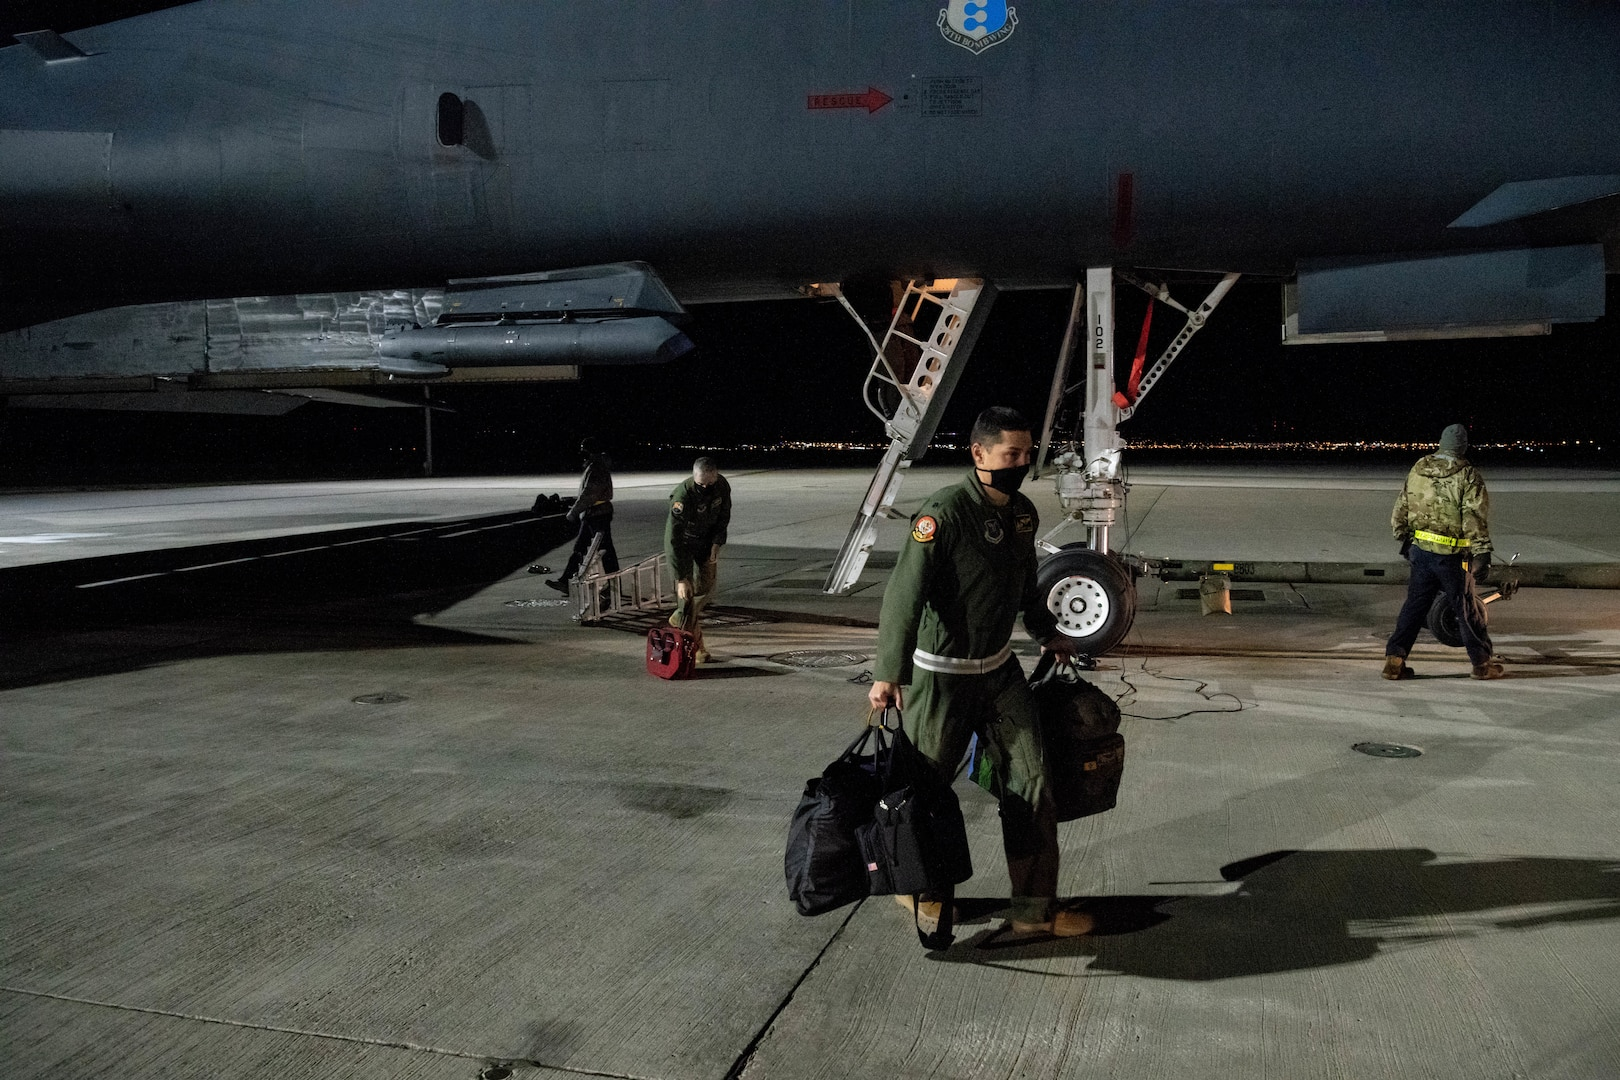 Gear is unloaded from a B-1B Lancer at Ellsworth Air Force Base, S.D., April 30, 2020, following the bomber's return from supporting a Bomber Task Force (BTF) mission in the Indo-Pacific region.